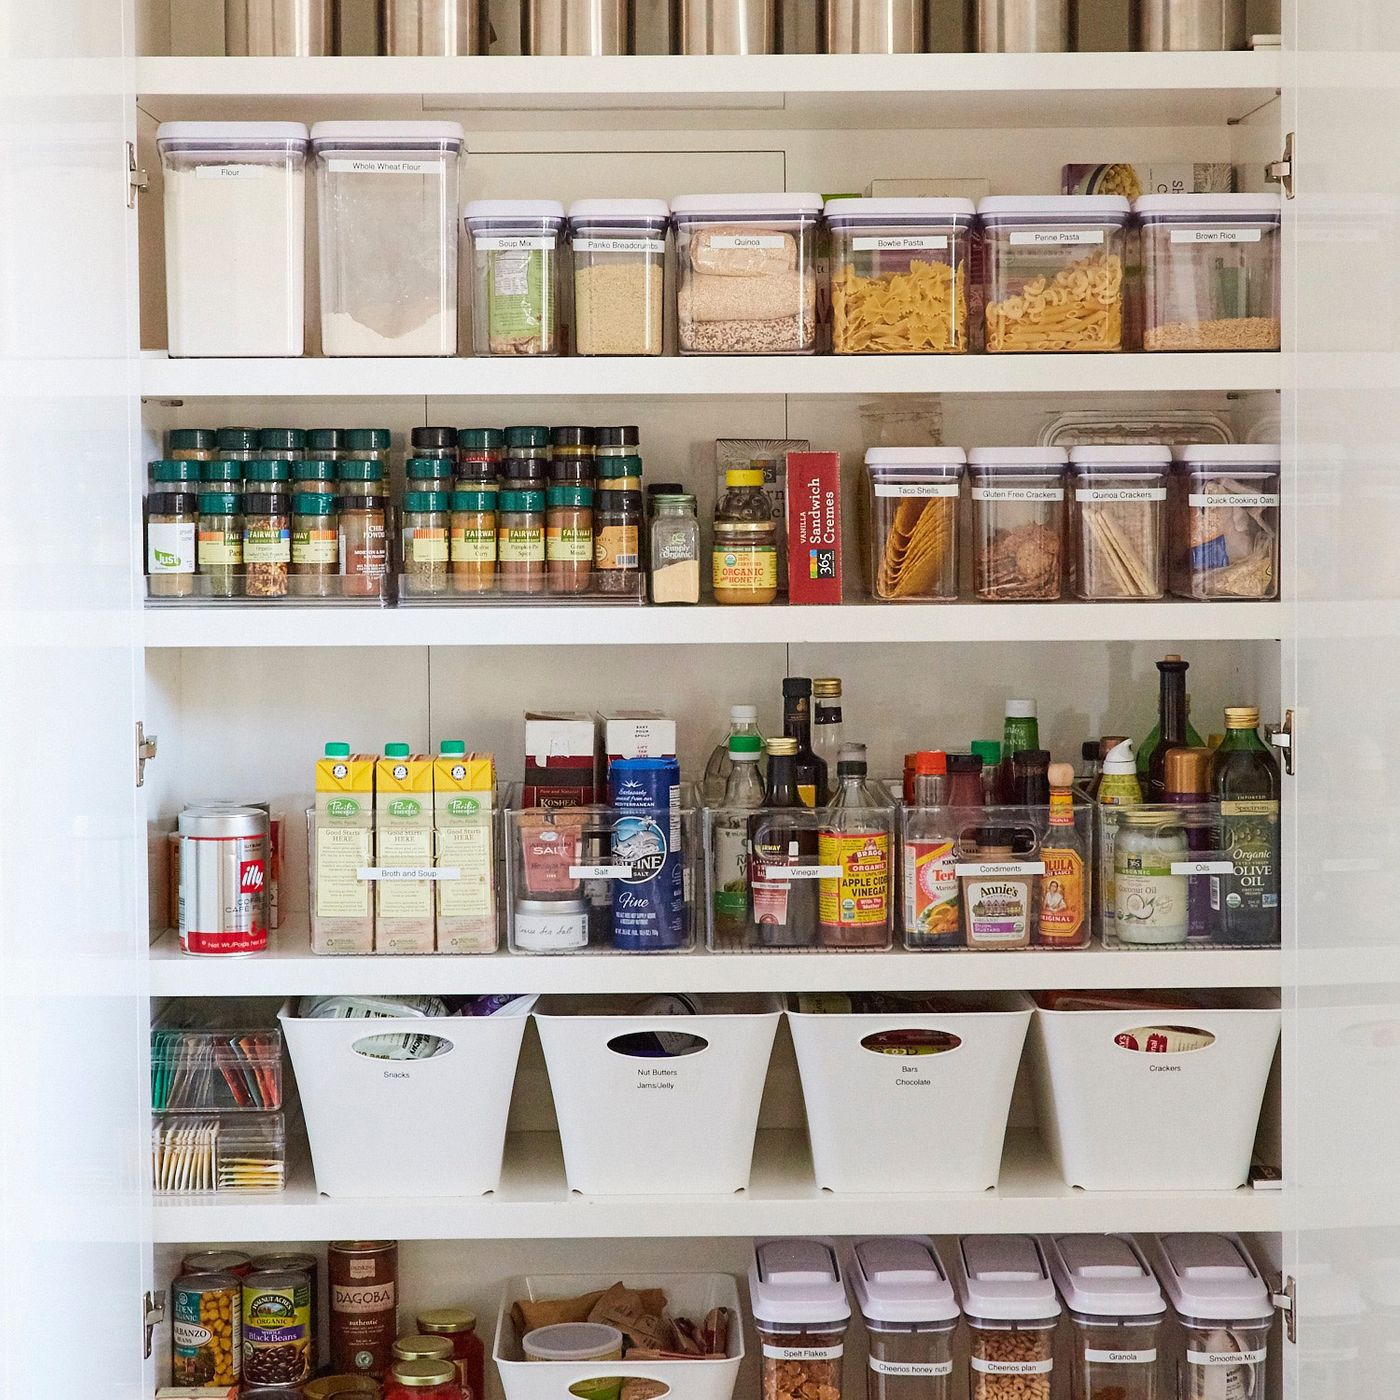 Best Storage Bins for Every Room, According to Professional ...